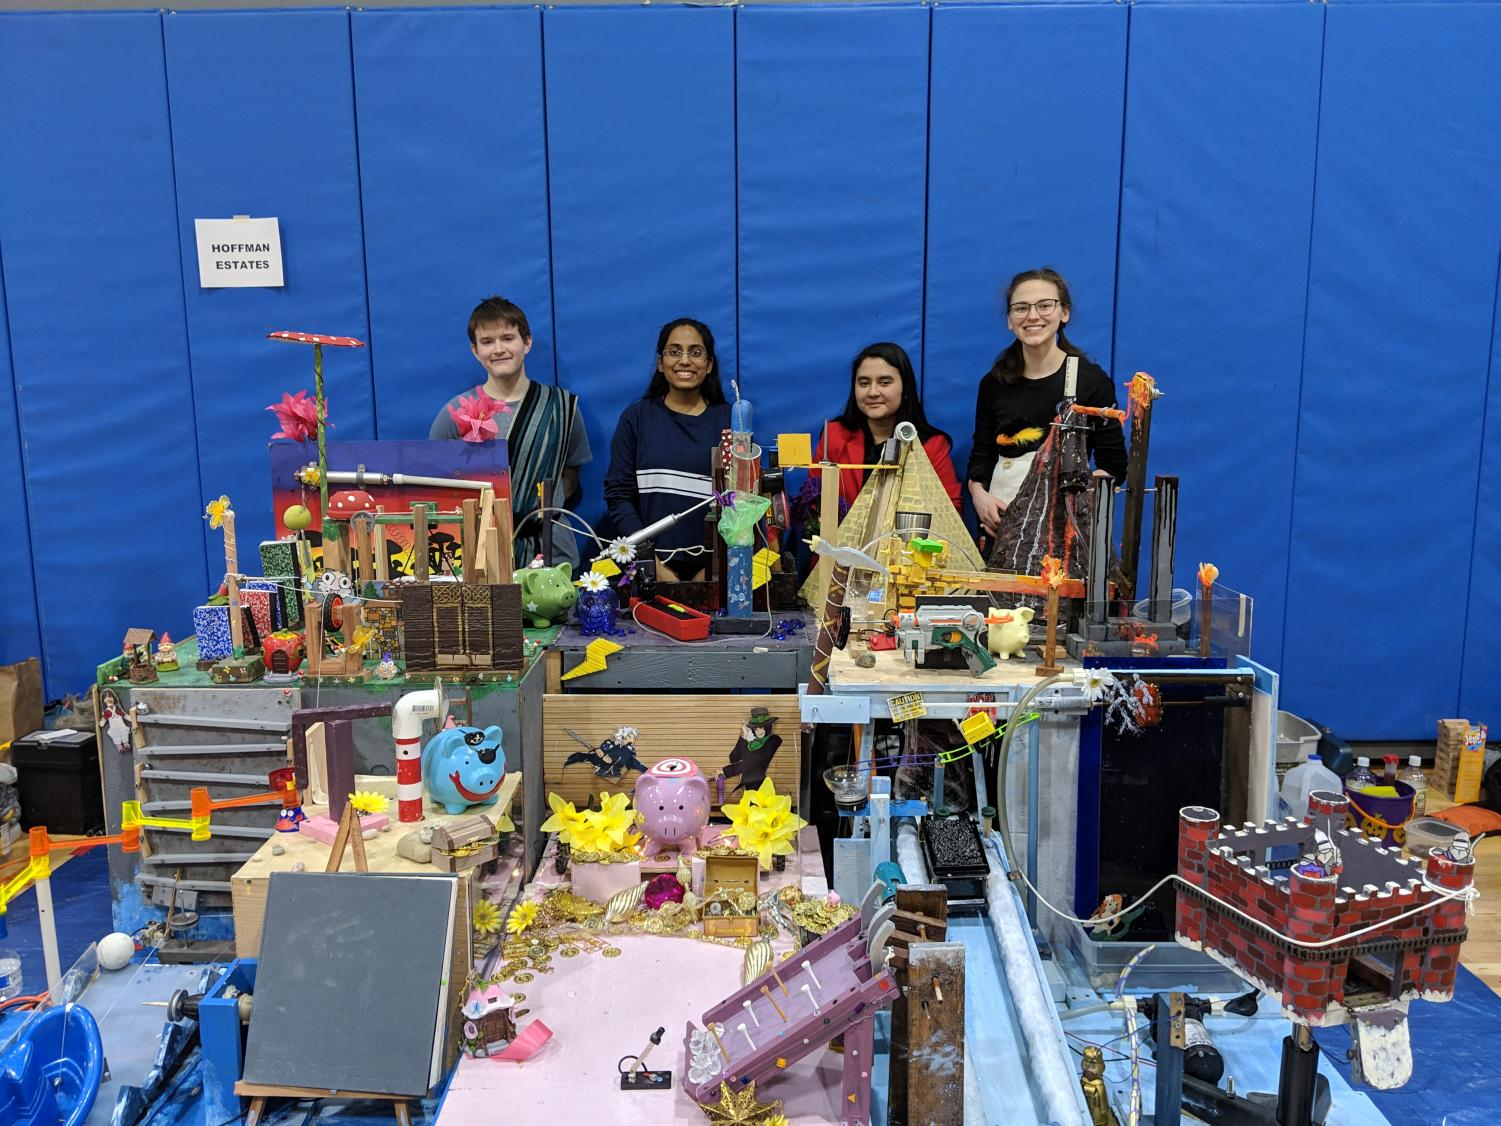 Ray Klest, Shraddha Zina, Ariana Correia, and Amber Dellacqua are proud that get to take their project to the next level.